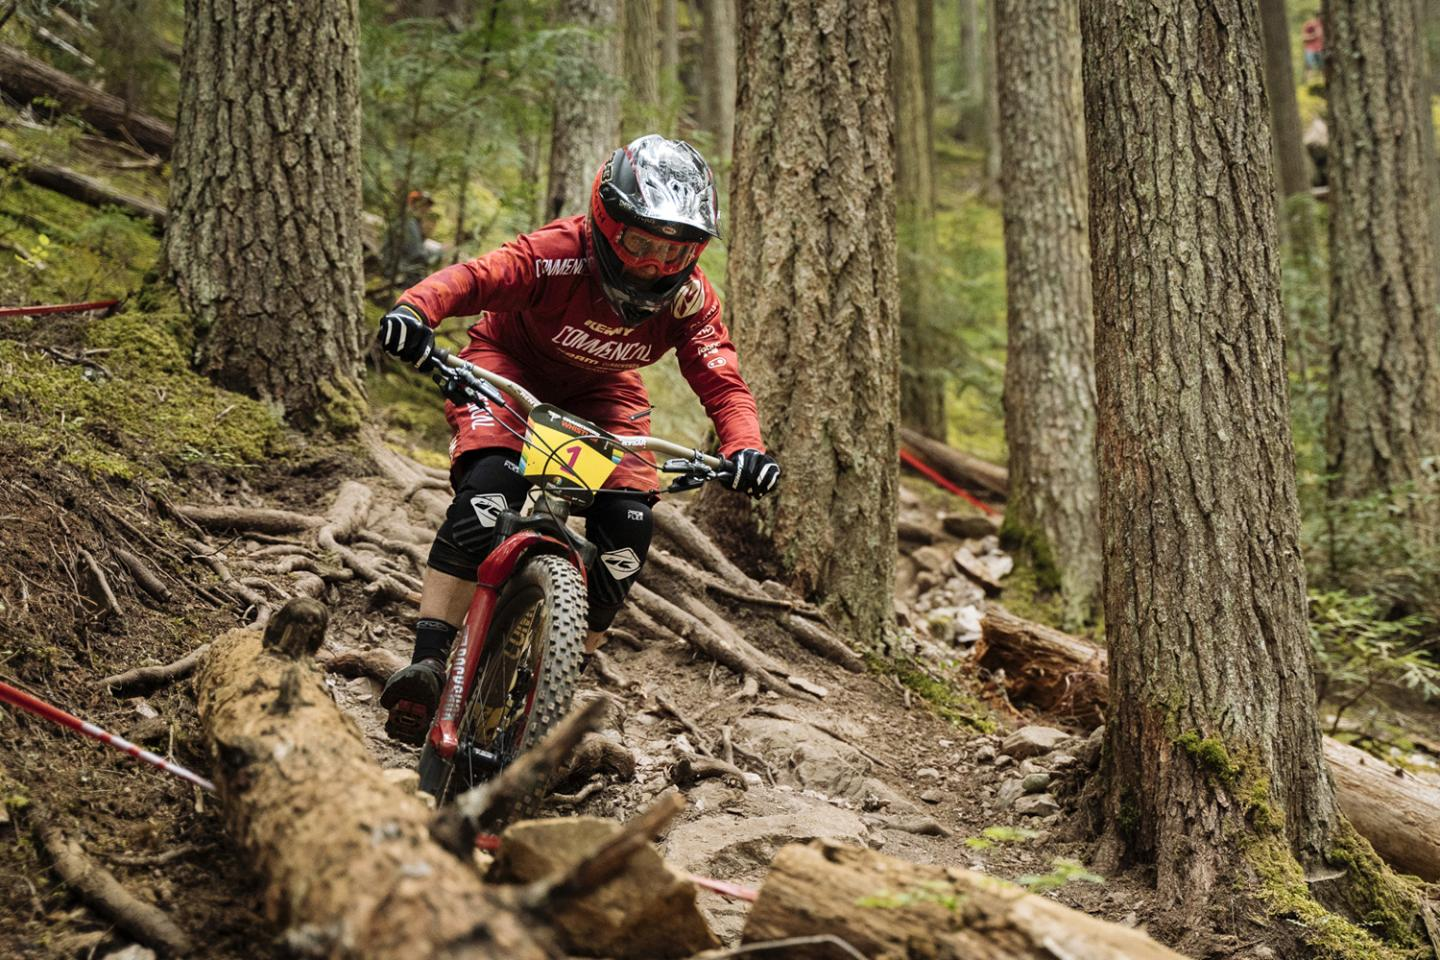 Enduro World Series at Crankworx comes down to final stage.